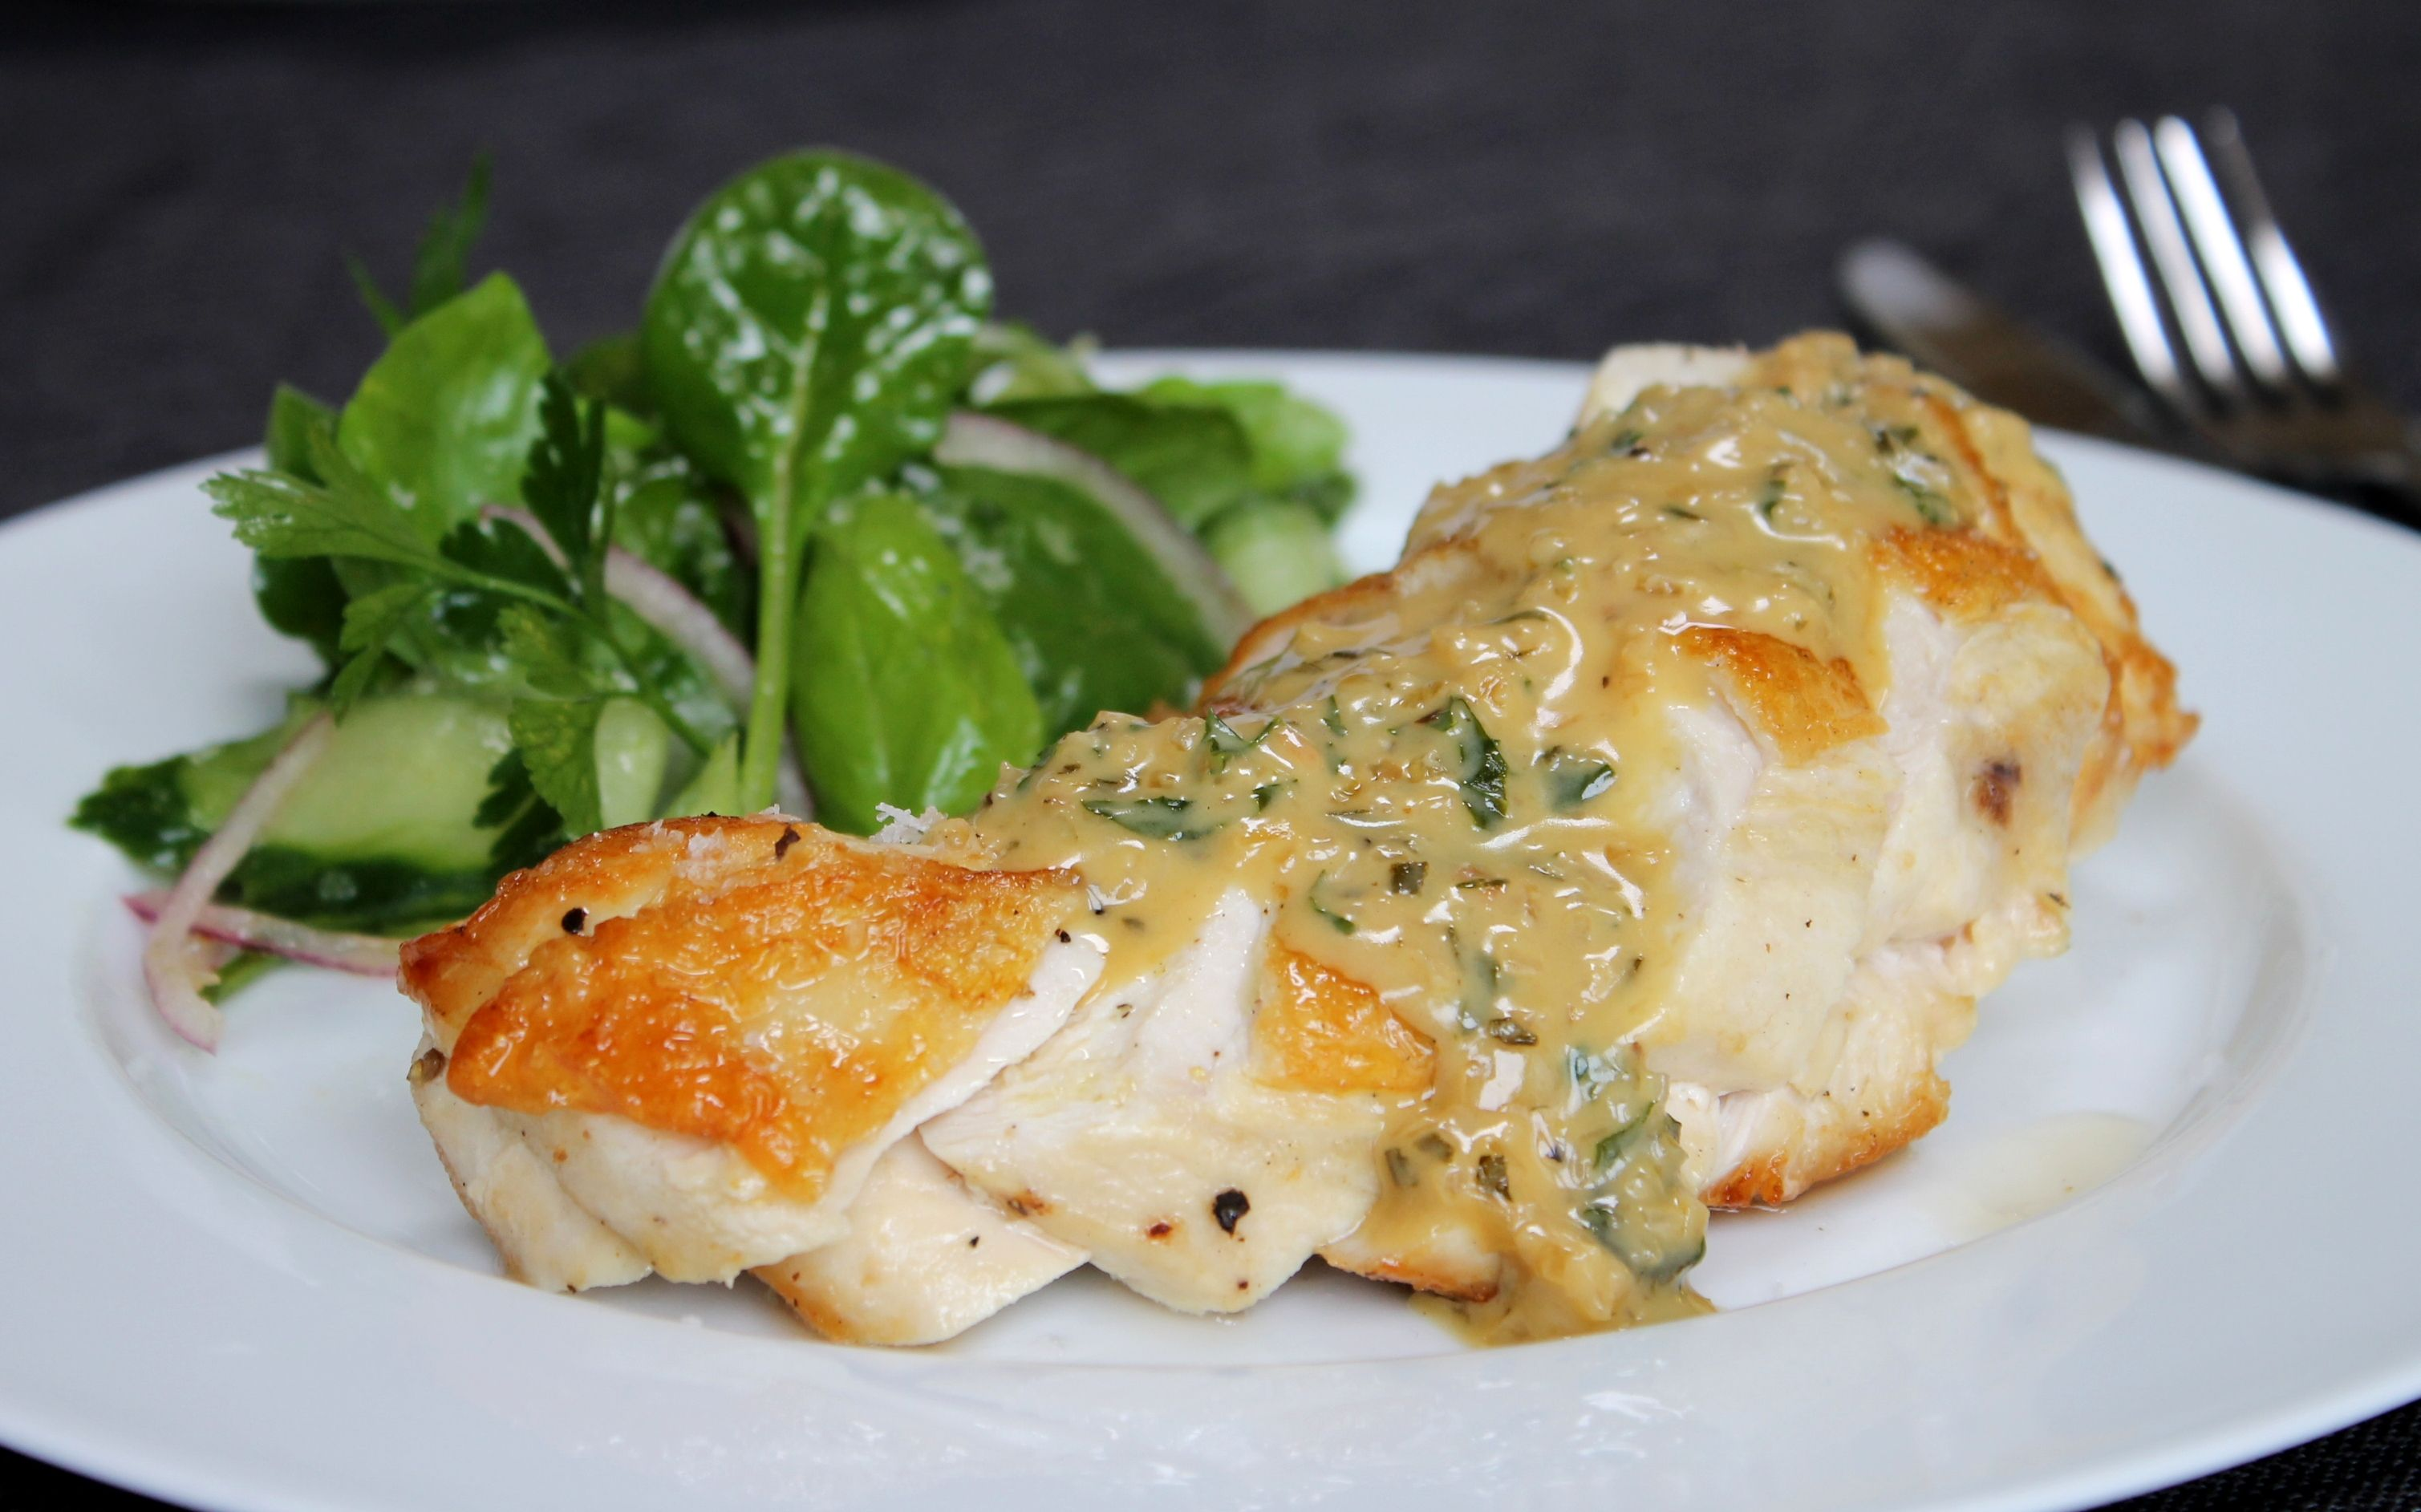 Recipes using roasted chicken breasts